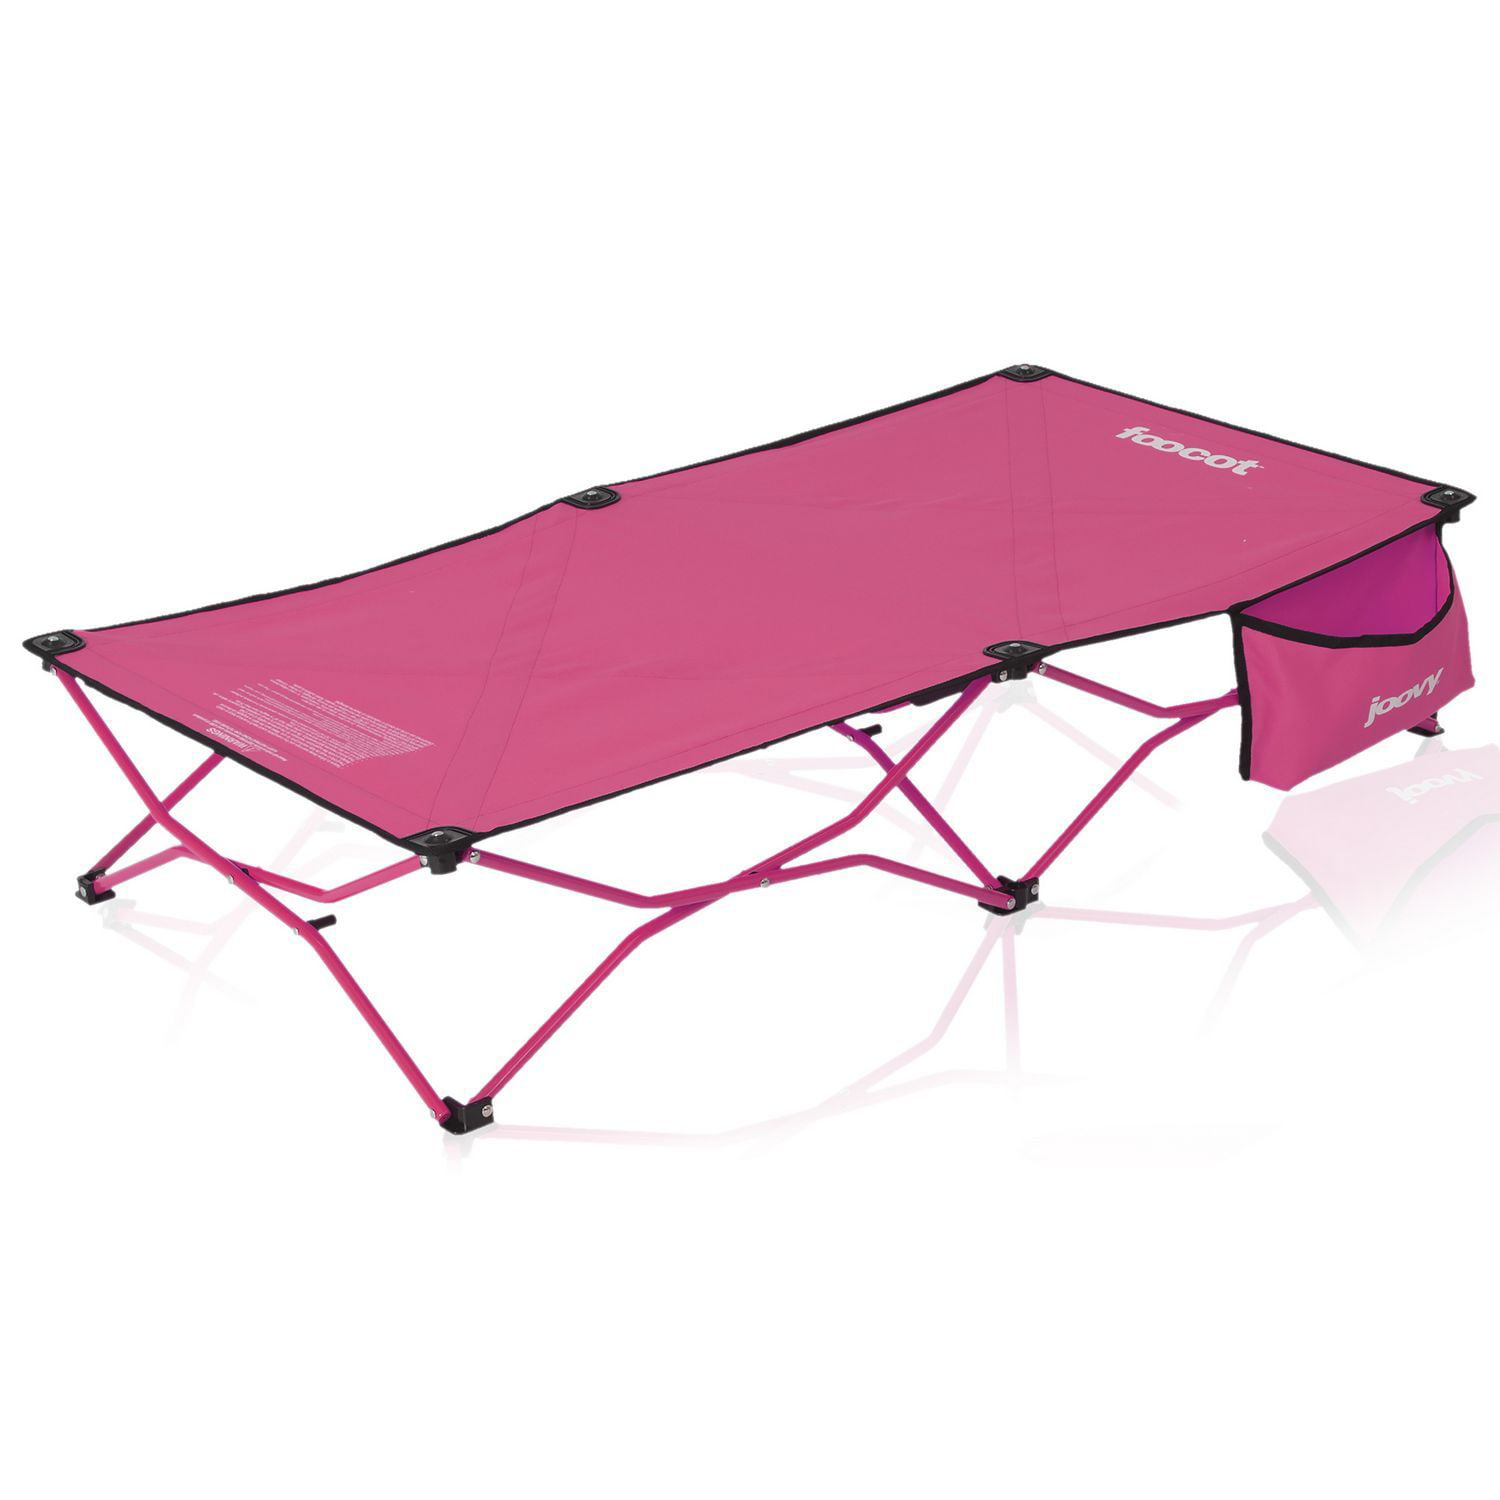 Joovy Foocot Travel Child and Toddler Cot, Pink by Joovy